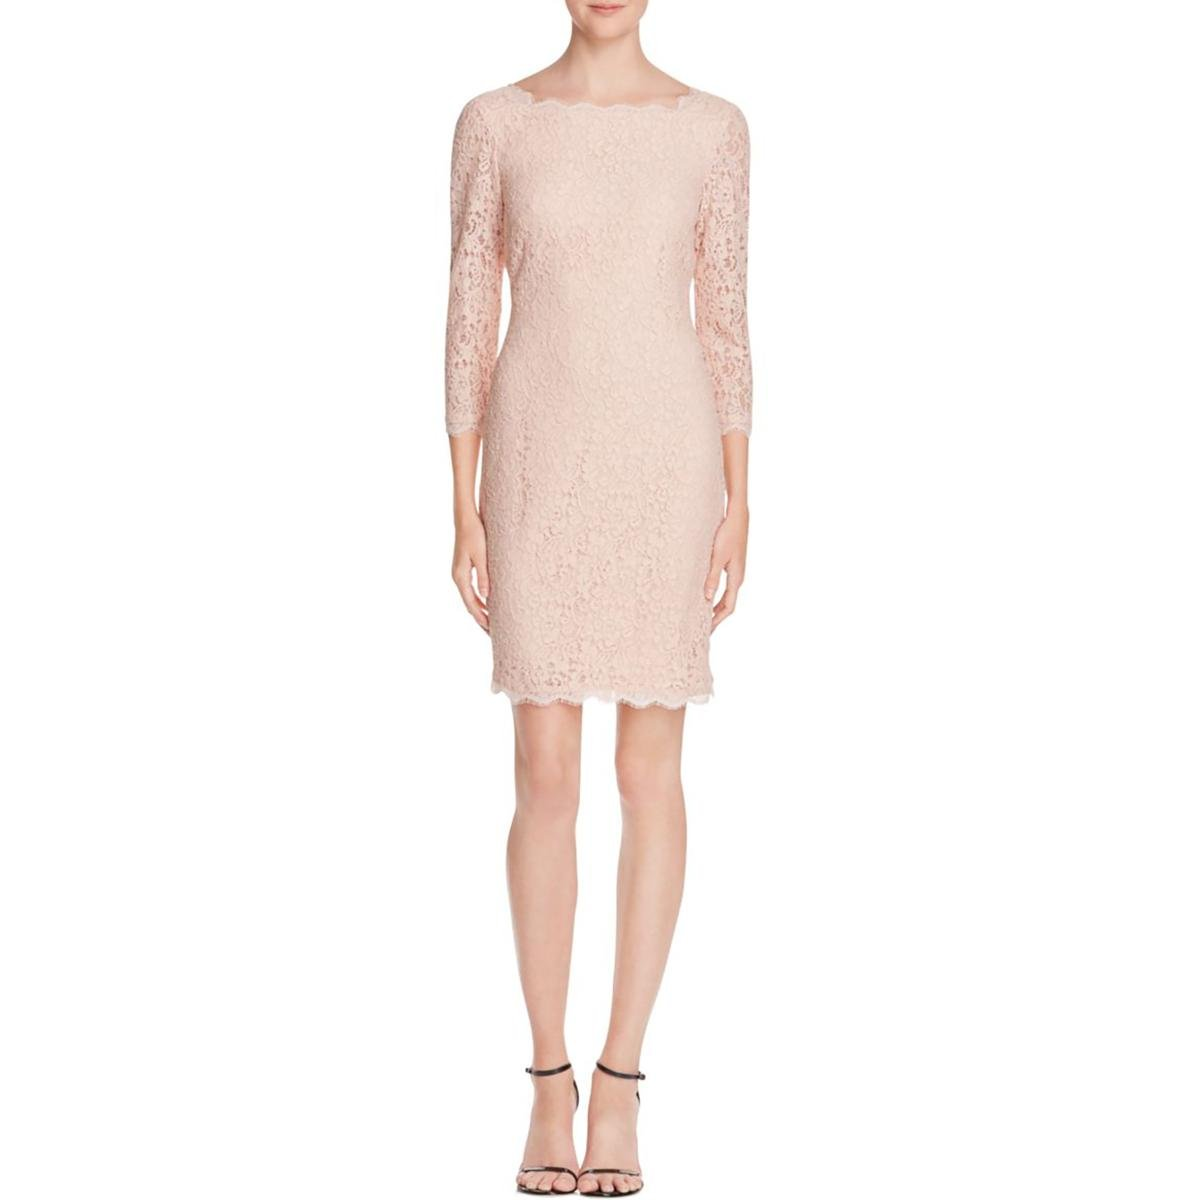 Adrianna Papell Womens Petites Lace 3/4 Sleeve Cocktail Dress Pink 4P